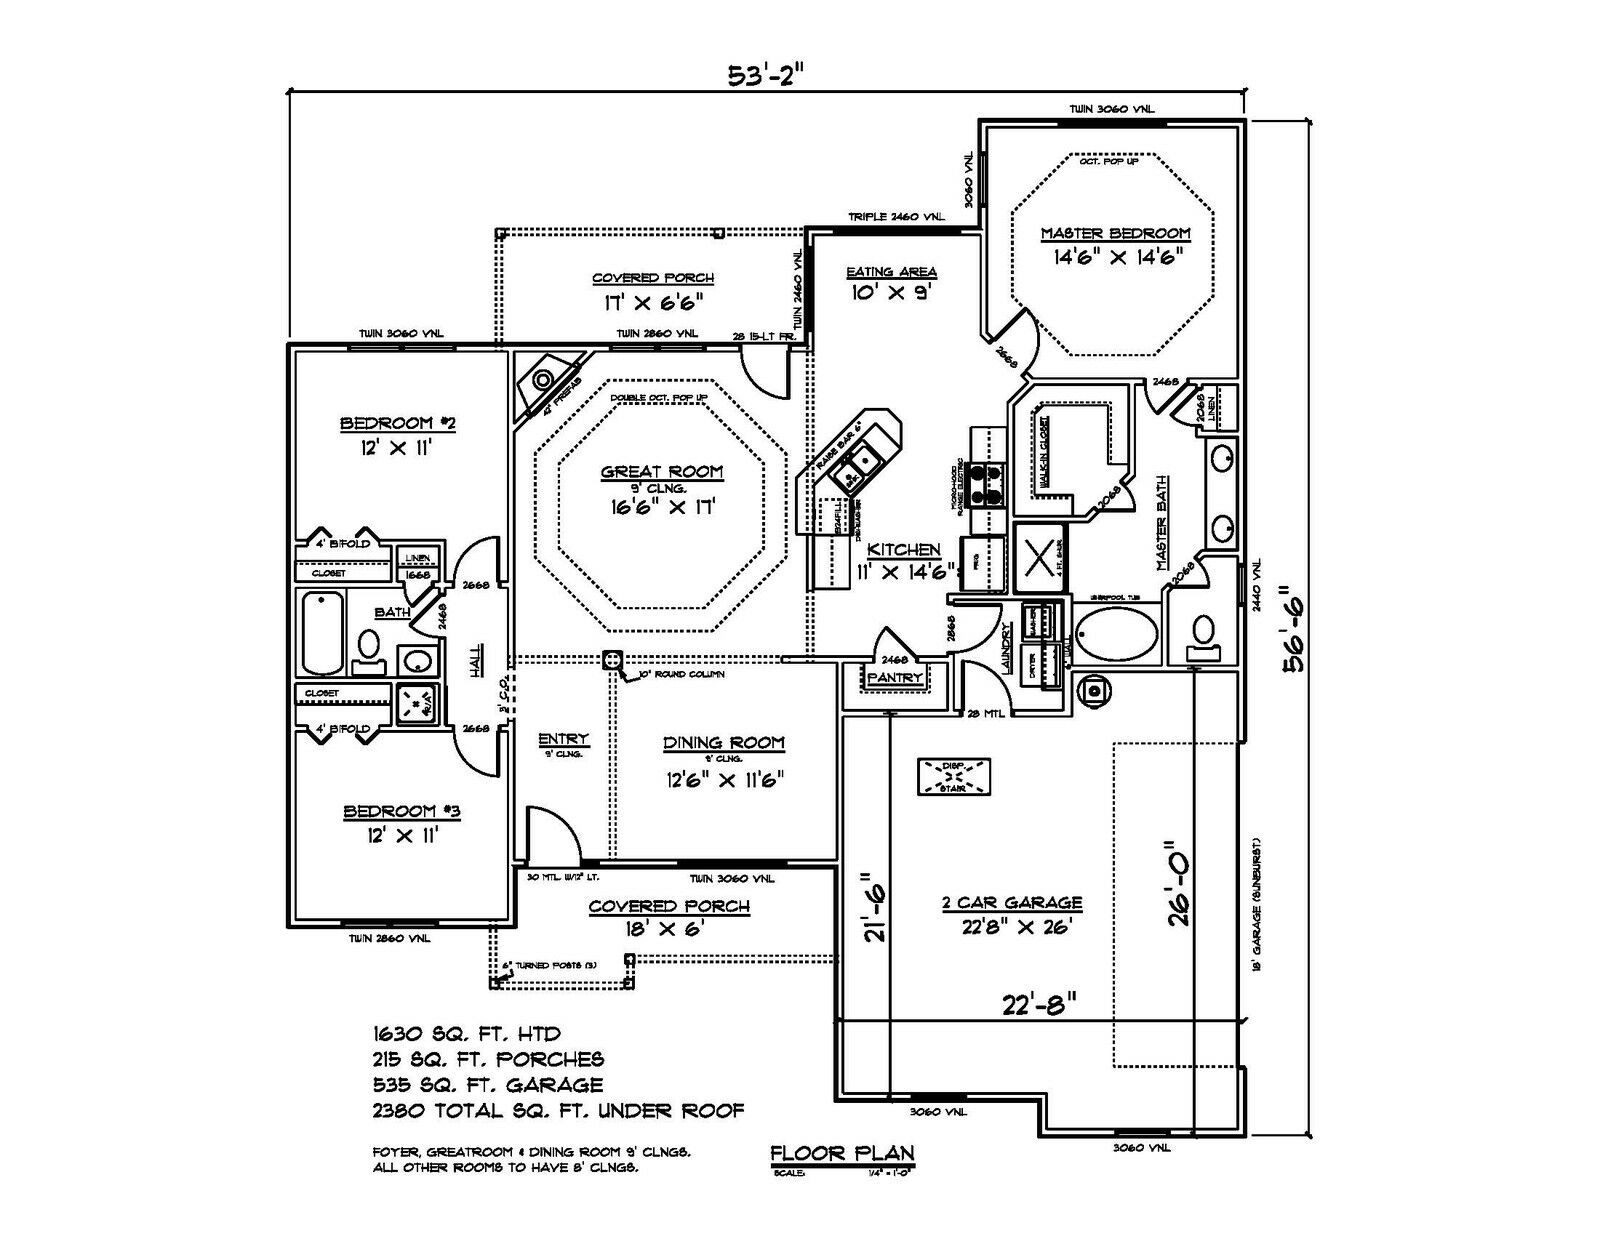 House Plans for 1630 Sq. Ft. 3 Bedroom House w Garage